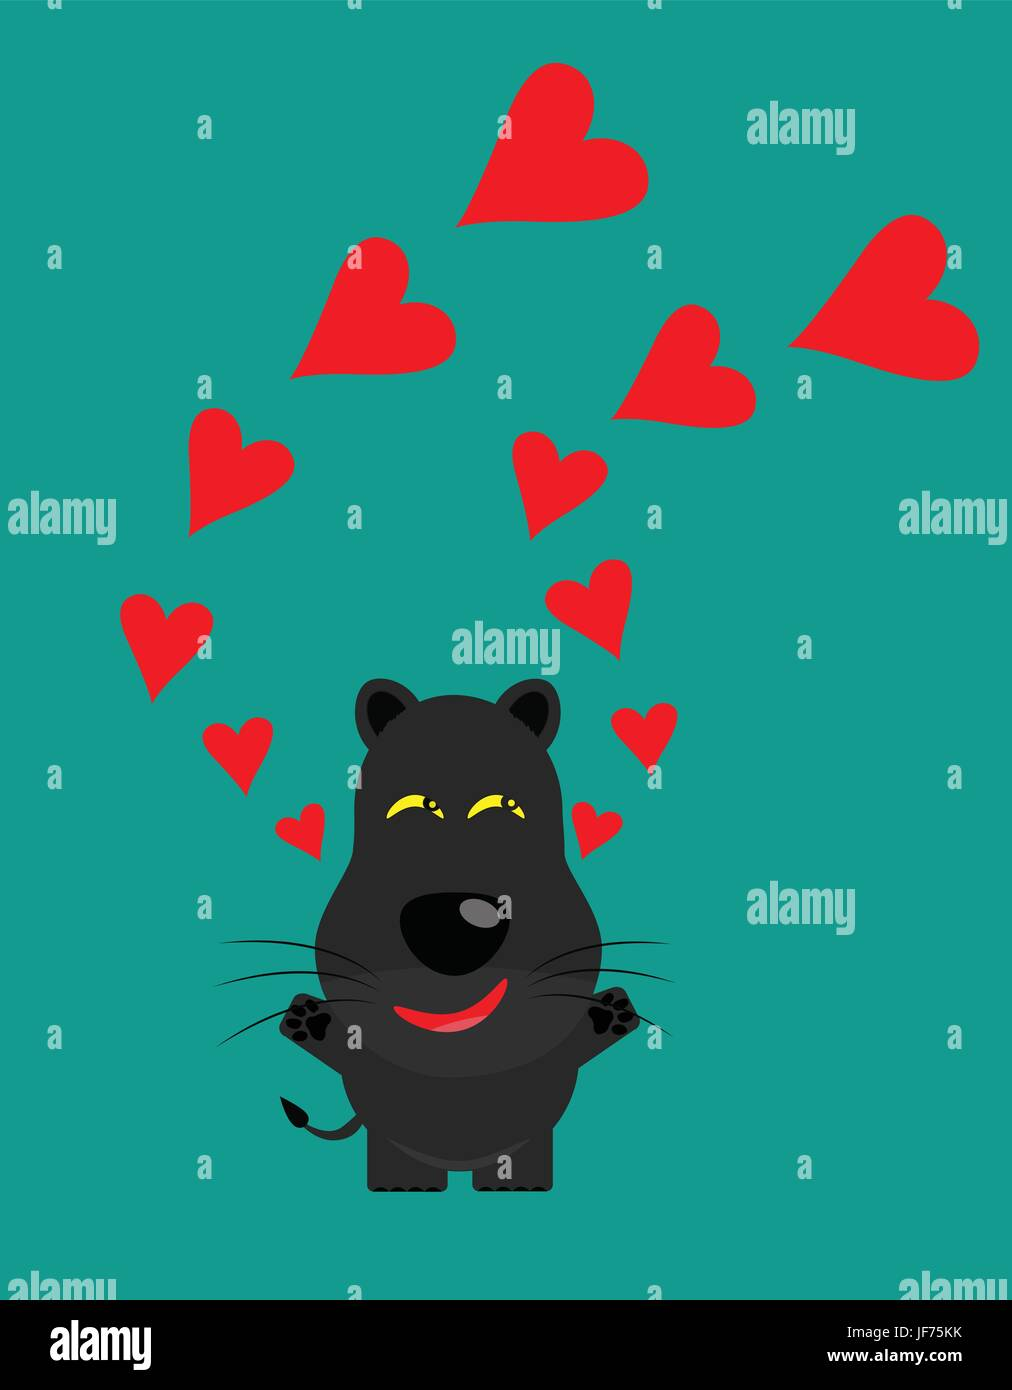 tricky black leopard gartoon character with heart - Stock Image